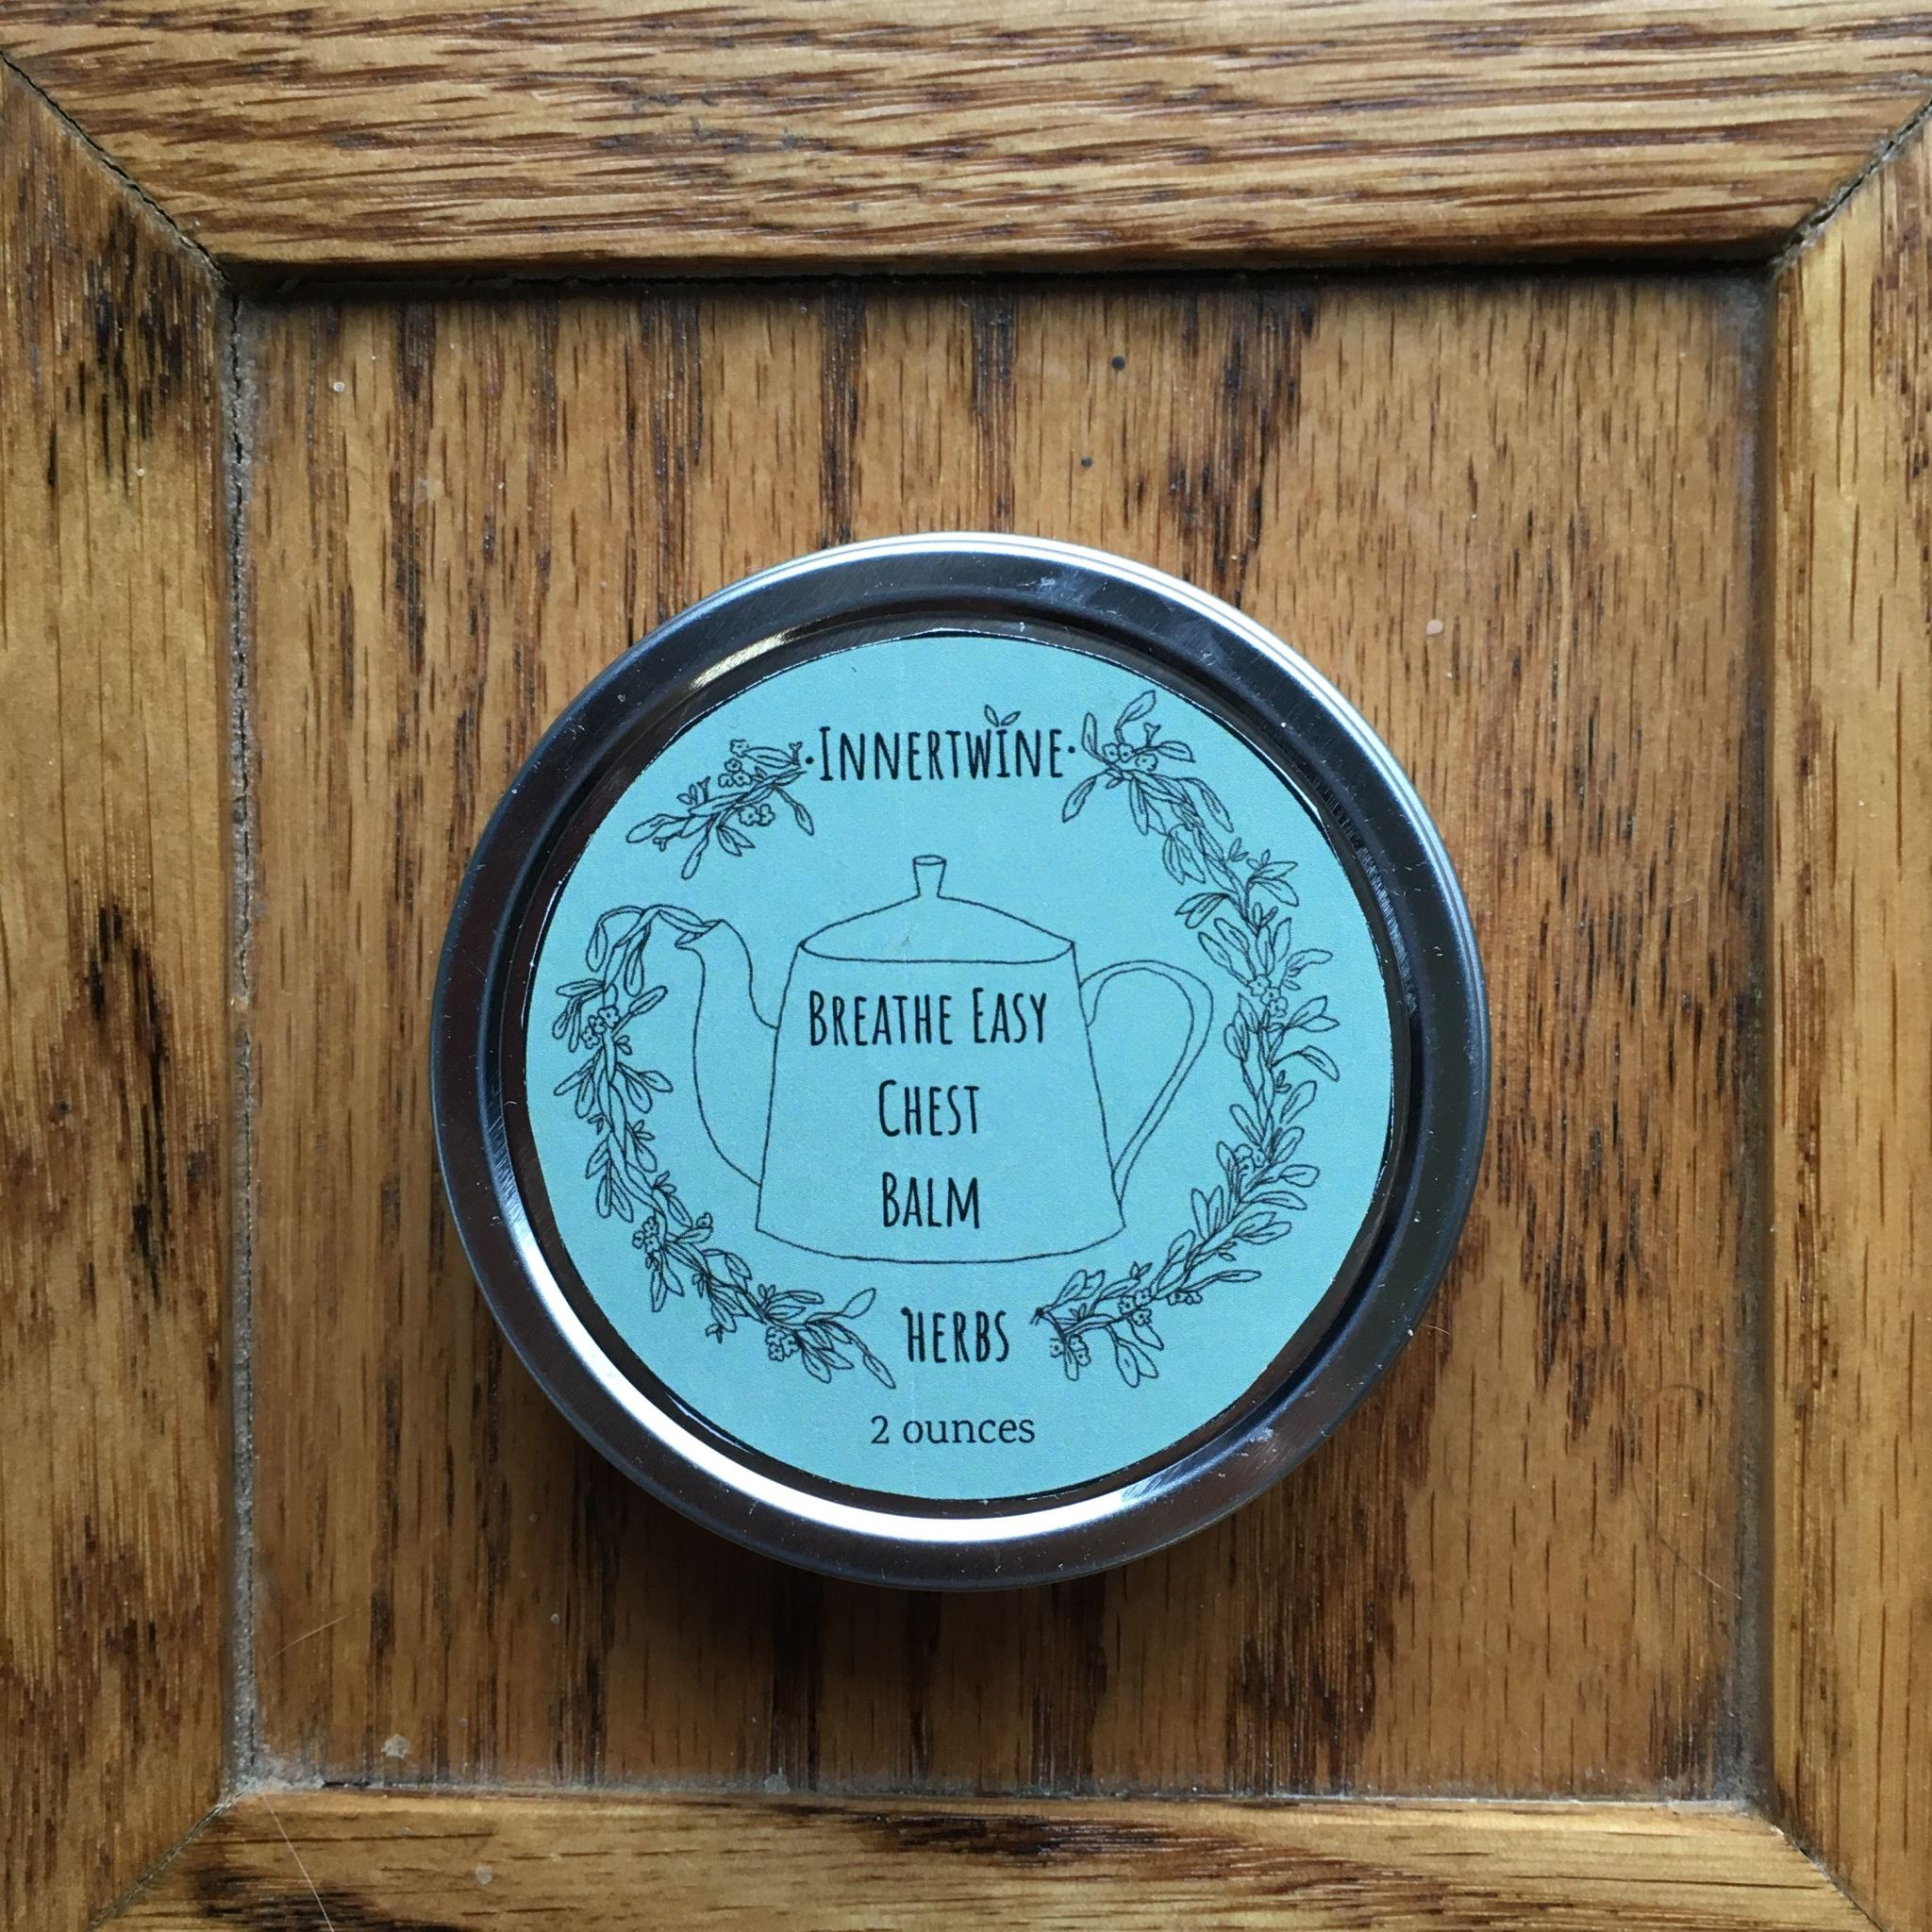 Innertwine Herbs - Breathe Easy Chest Balm (2 ounce tin)